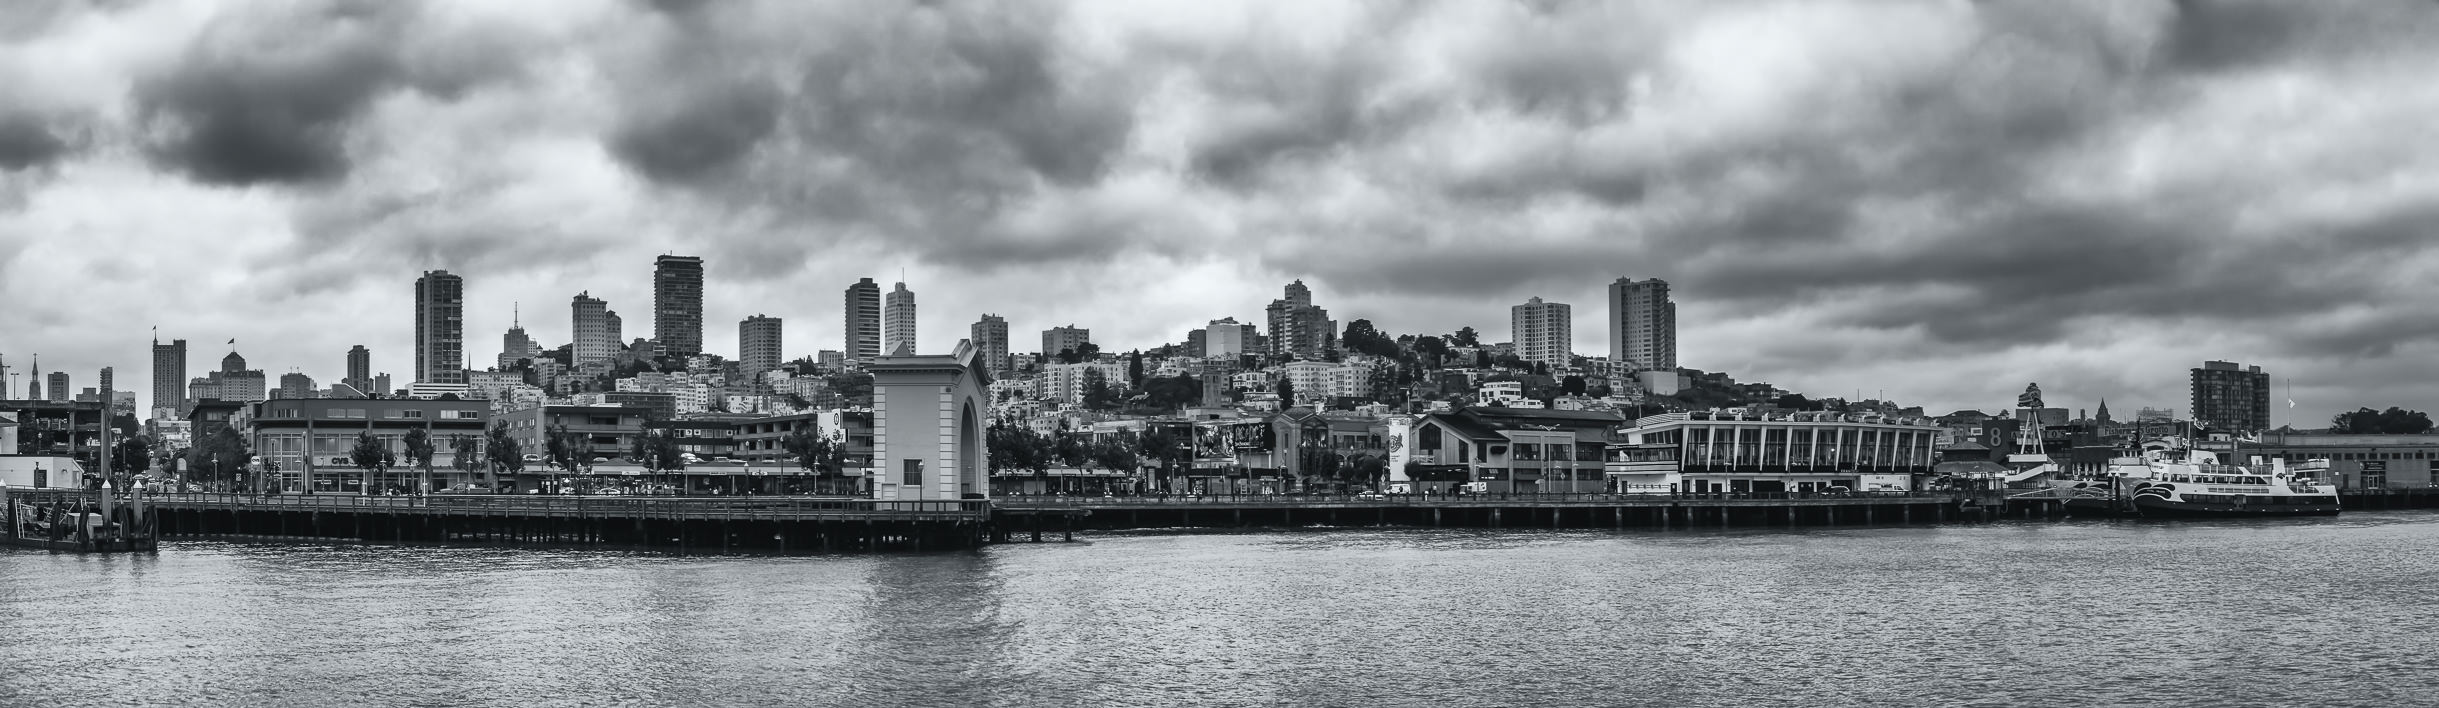 A panoramic view of San Francisco's Russian Hill area as rain clouds settle over the city.